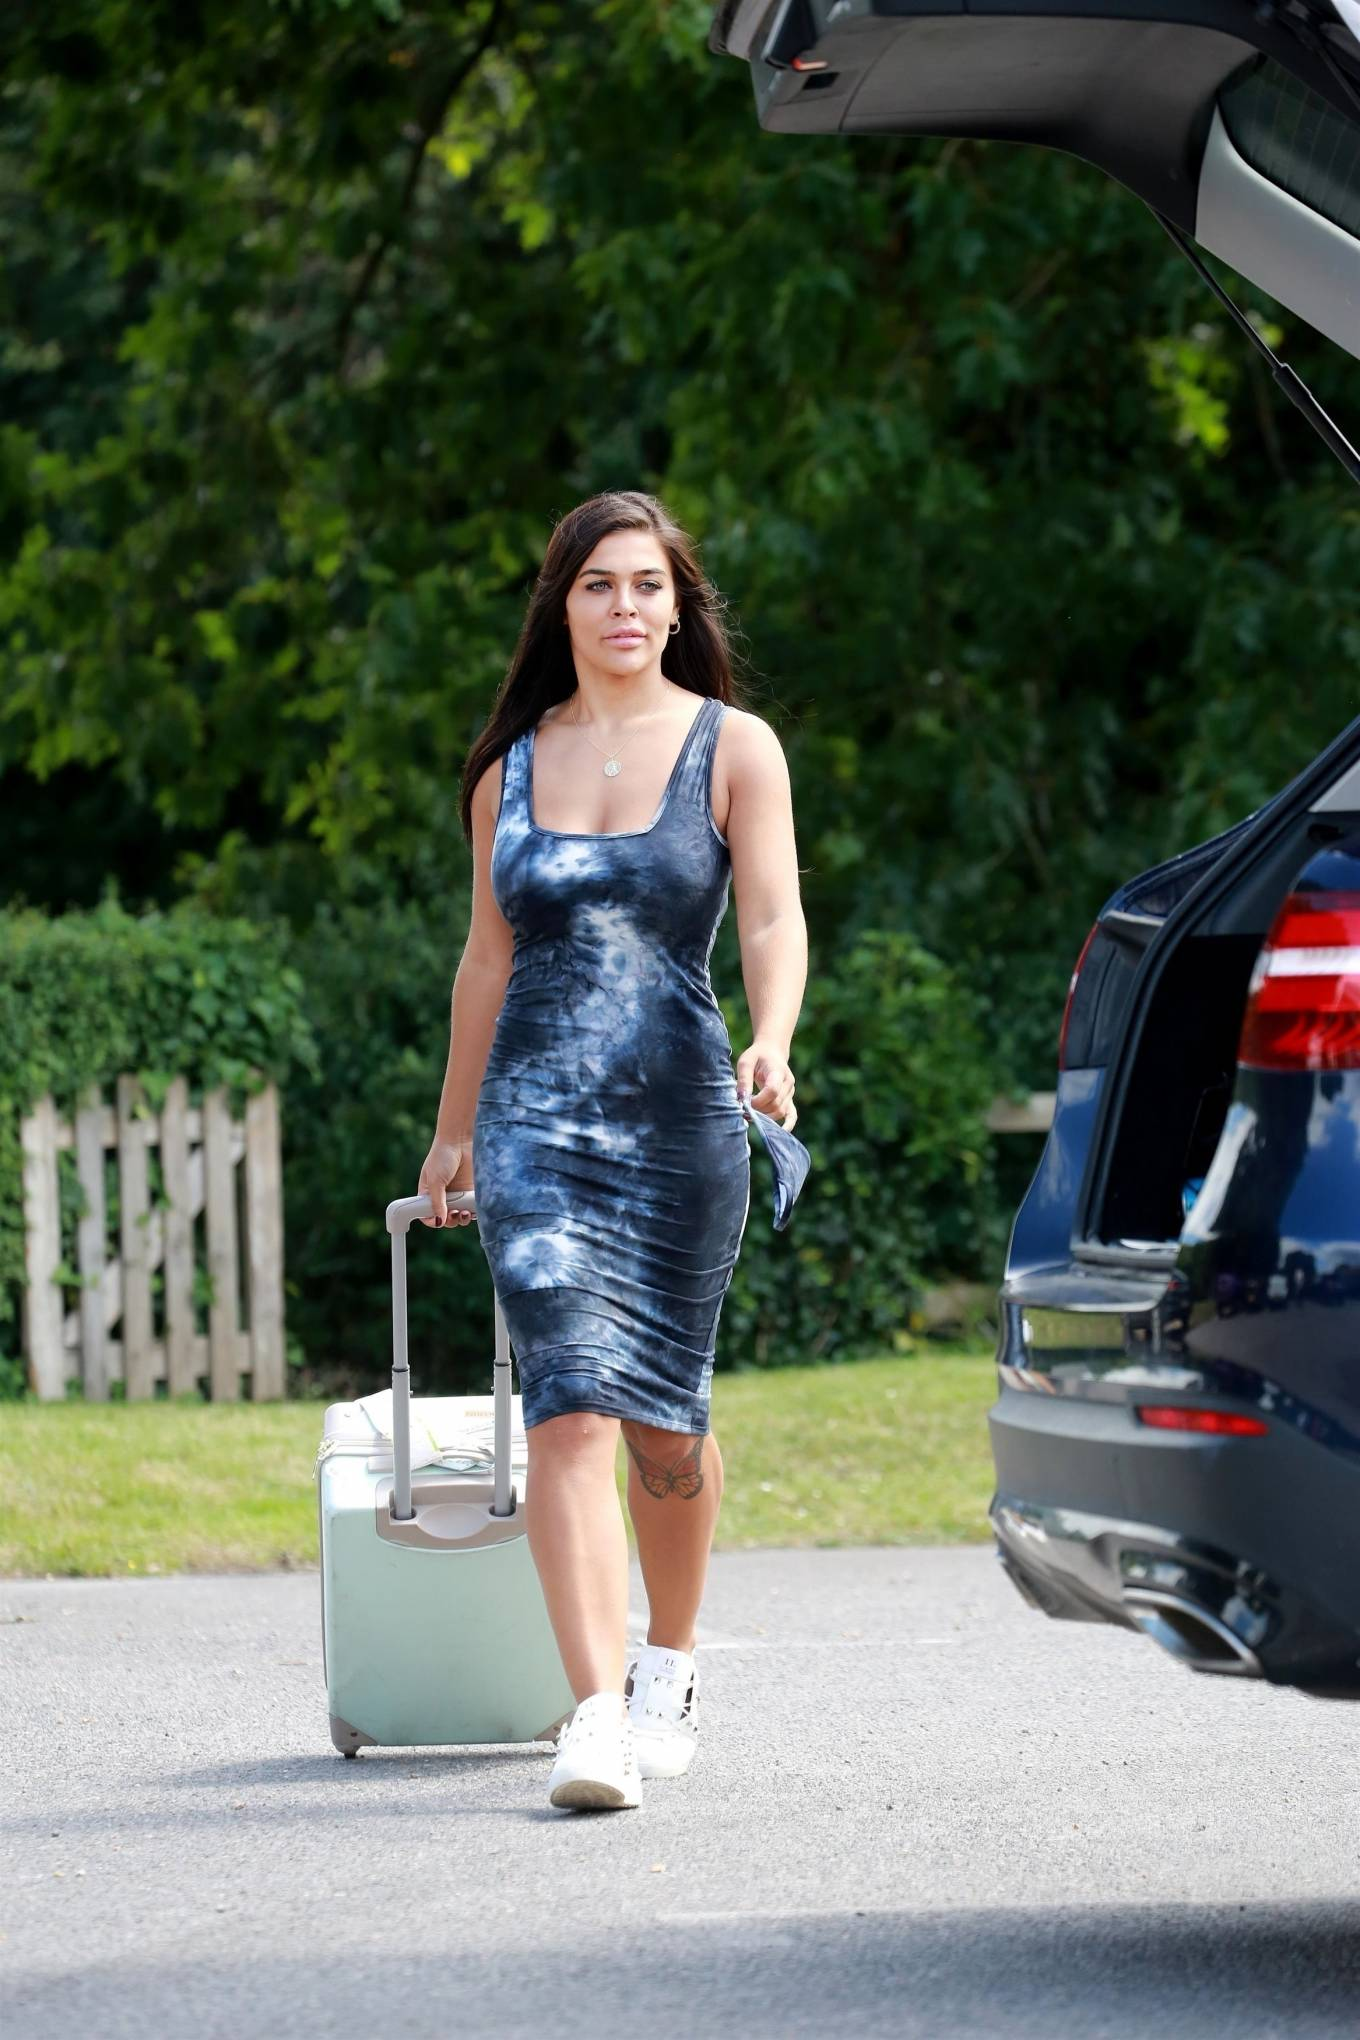 Lydia Clyma in Tight Dress heading off on her holiday after lockdown